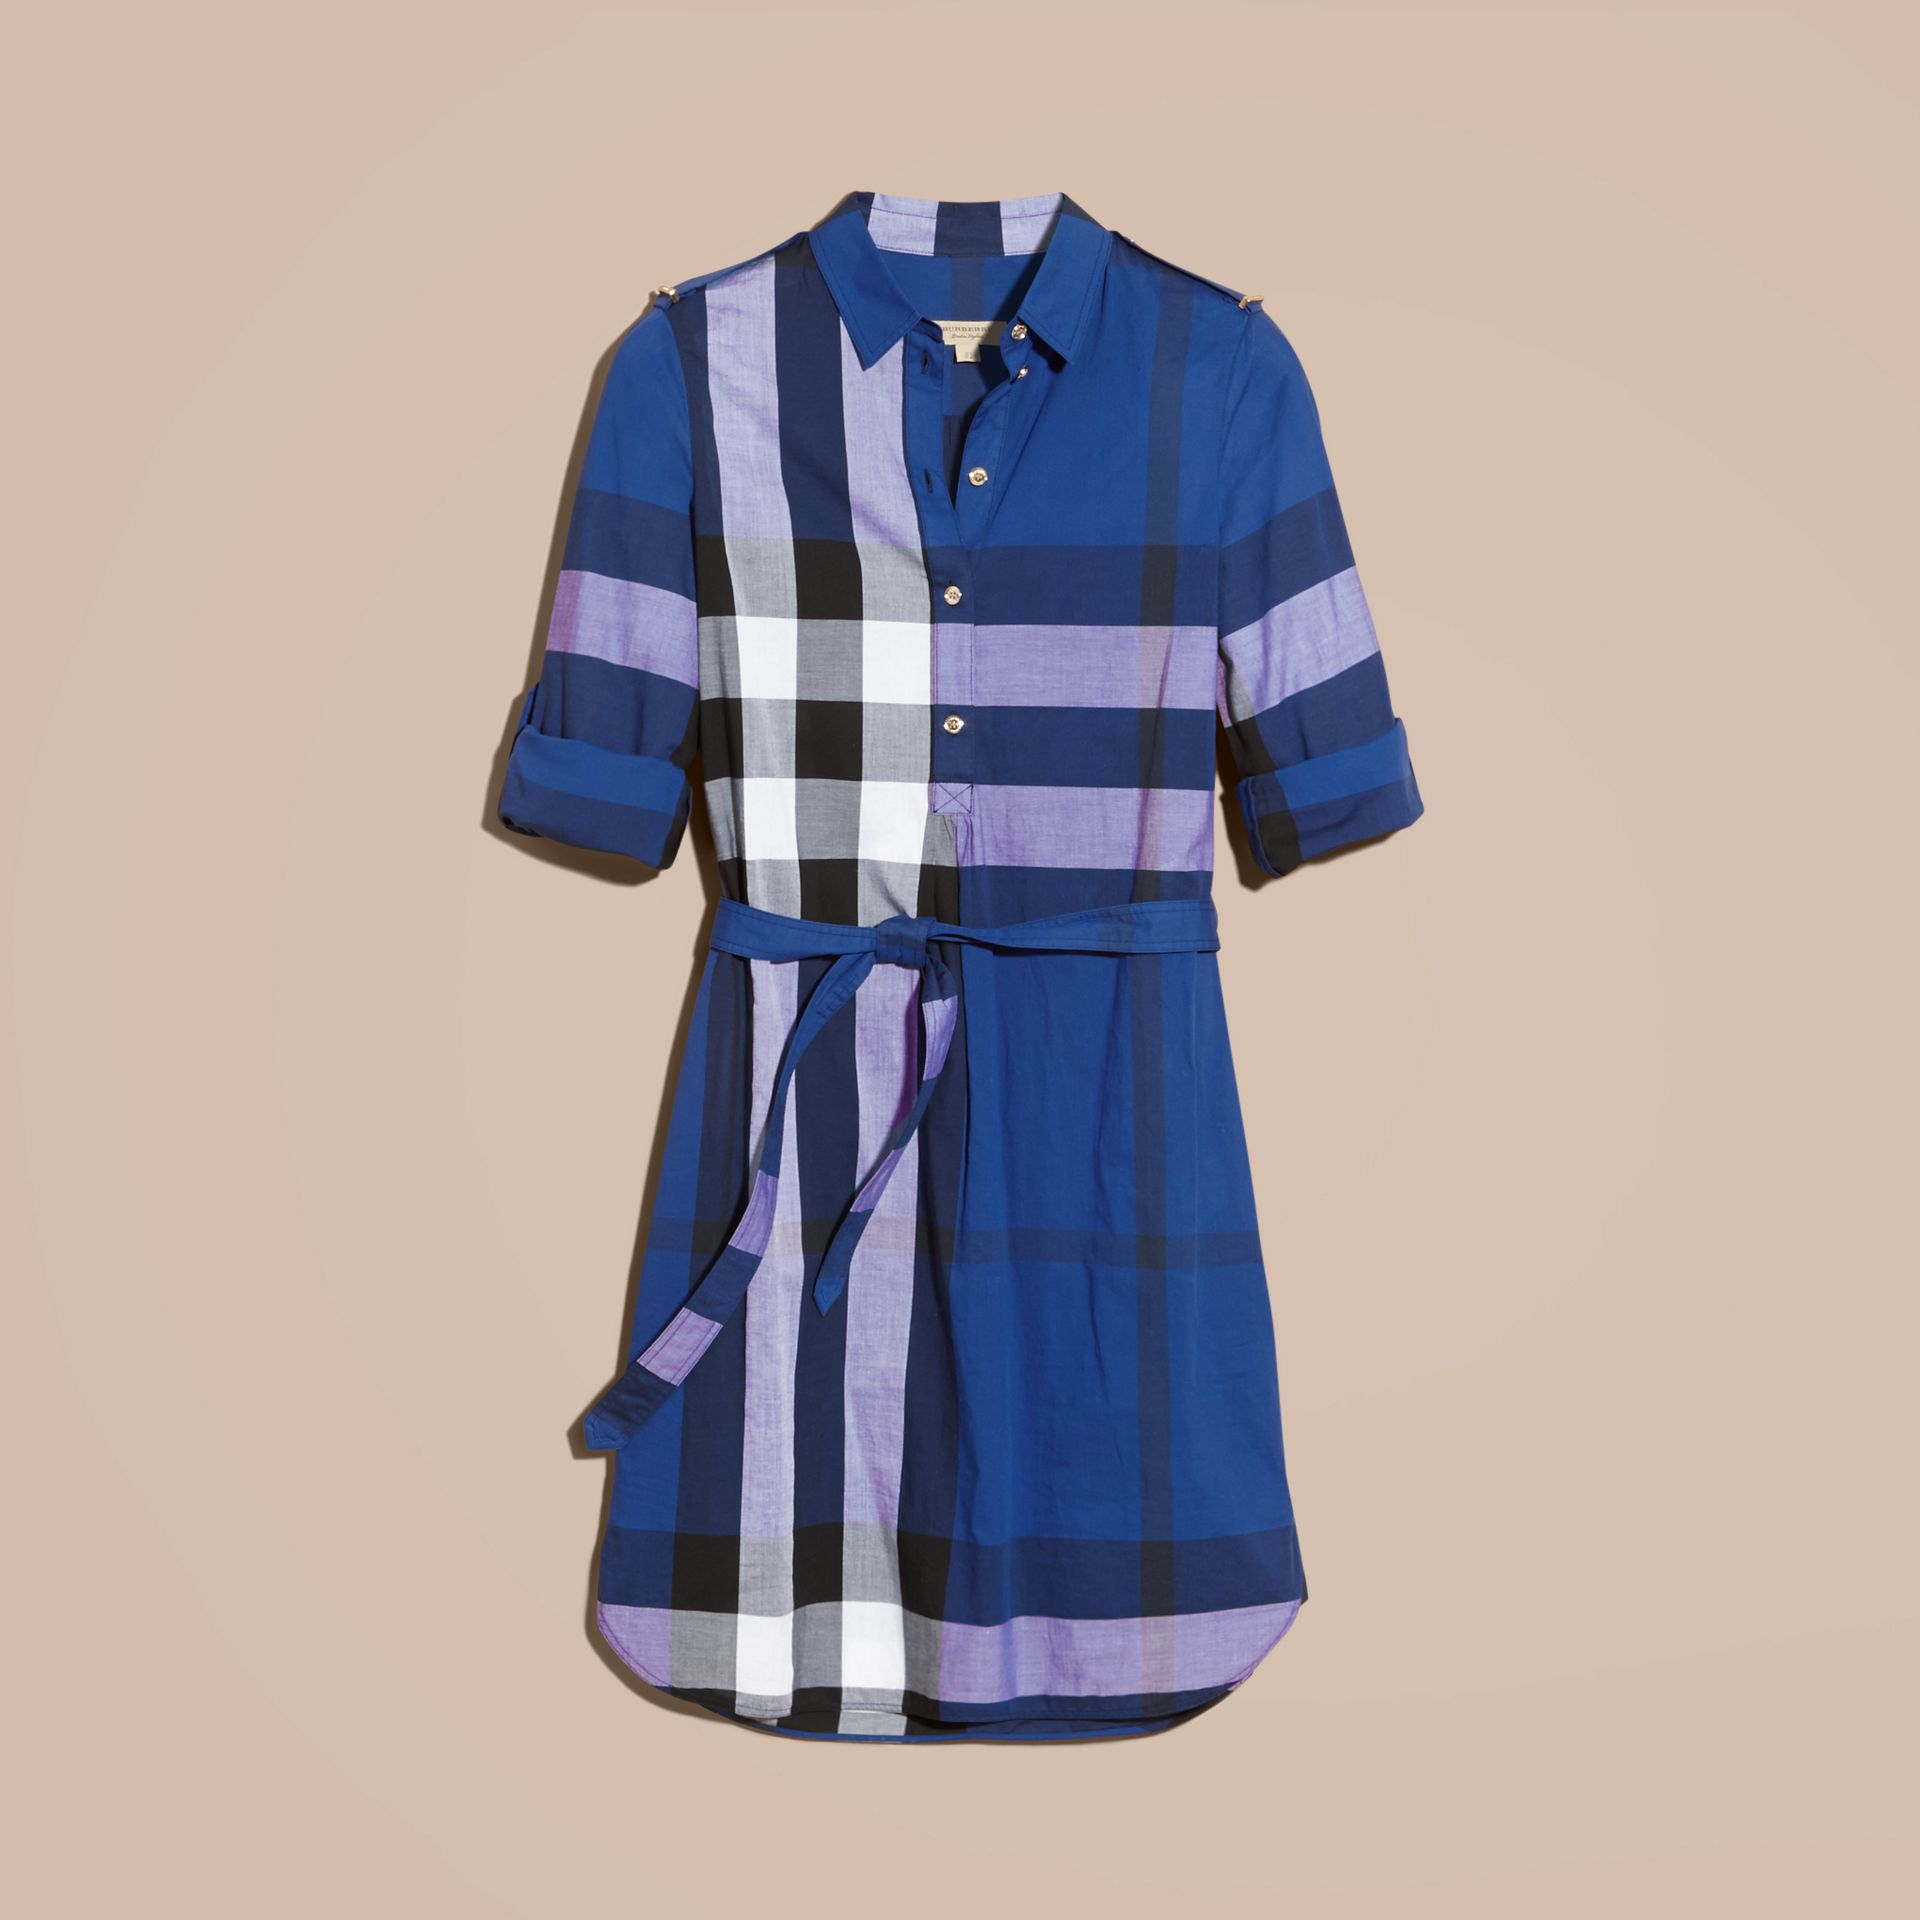 Brilliant blue Check Cotton Shirt Dress Brilliant Blue - gallery image 4